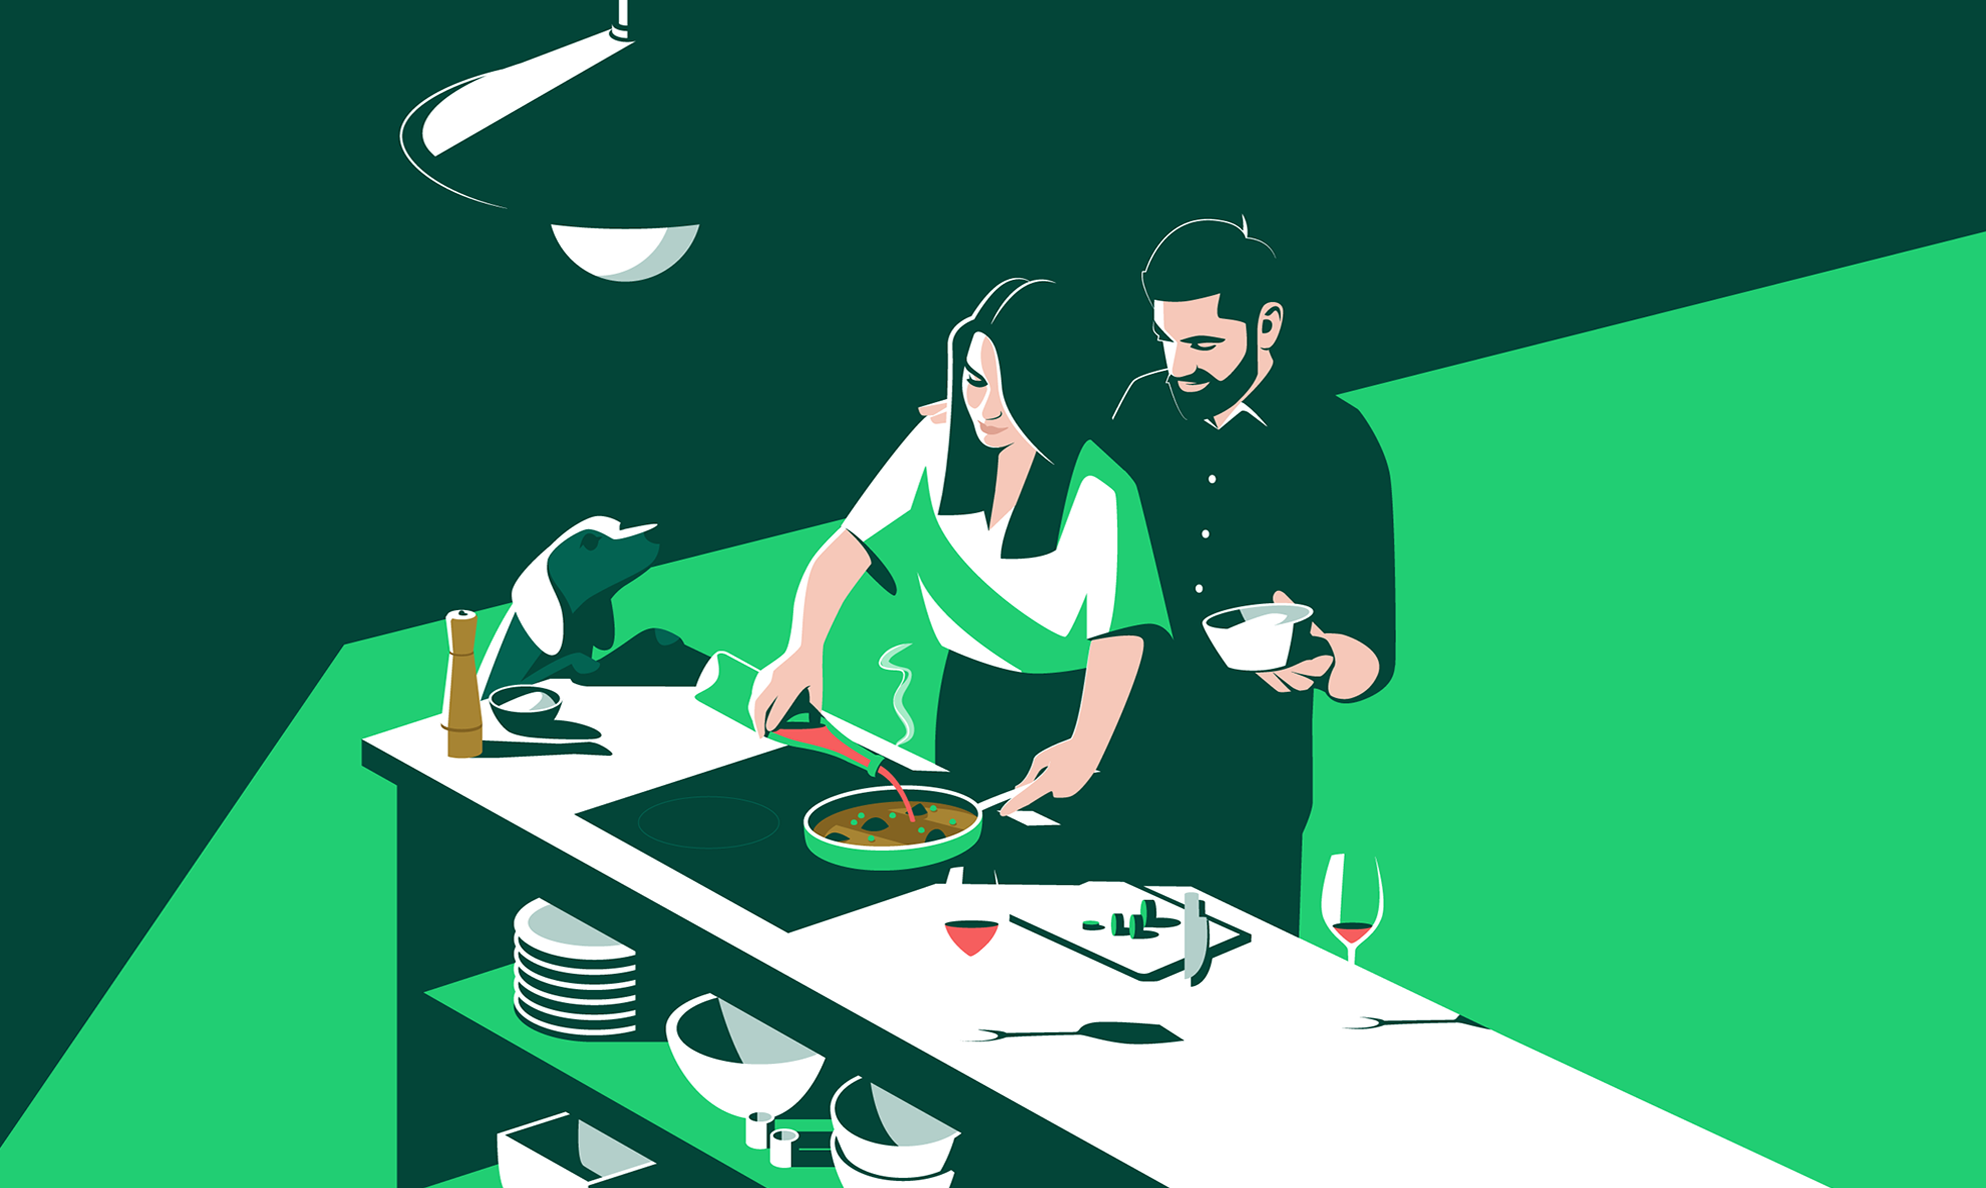 Illustration of Cooking together Section / Peñín Guide - El Chico Llama